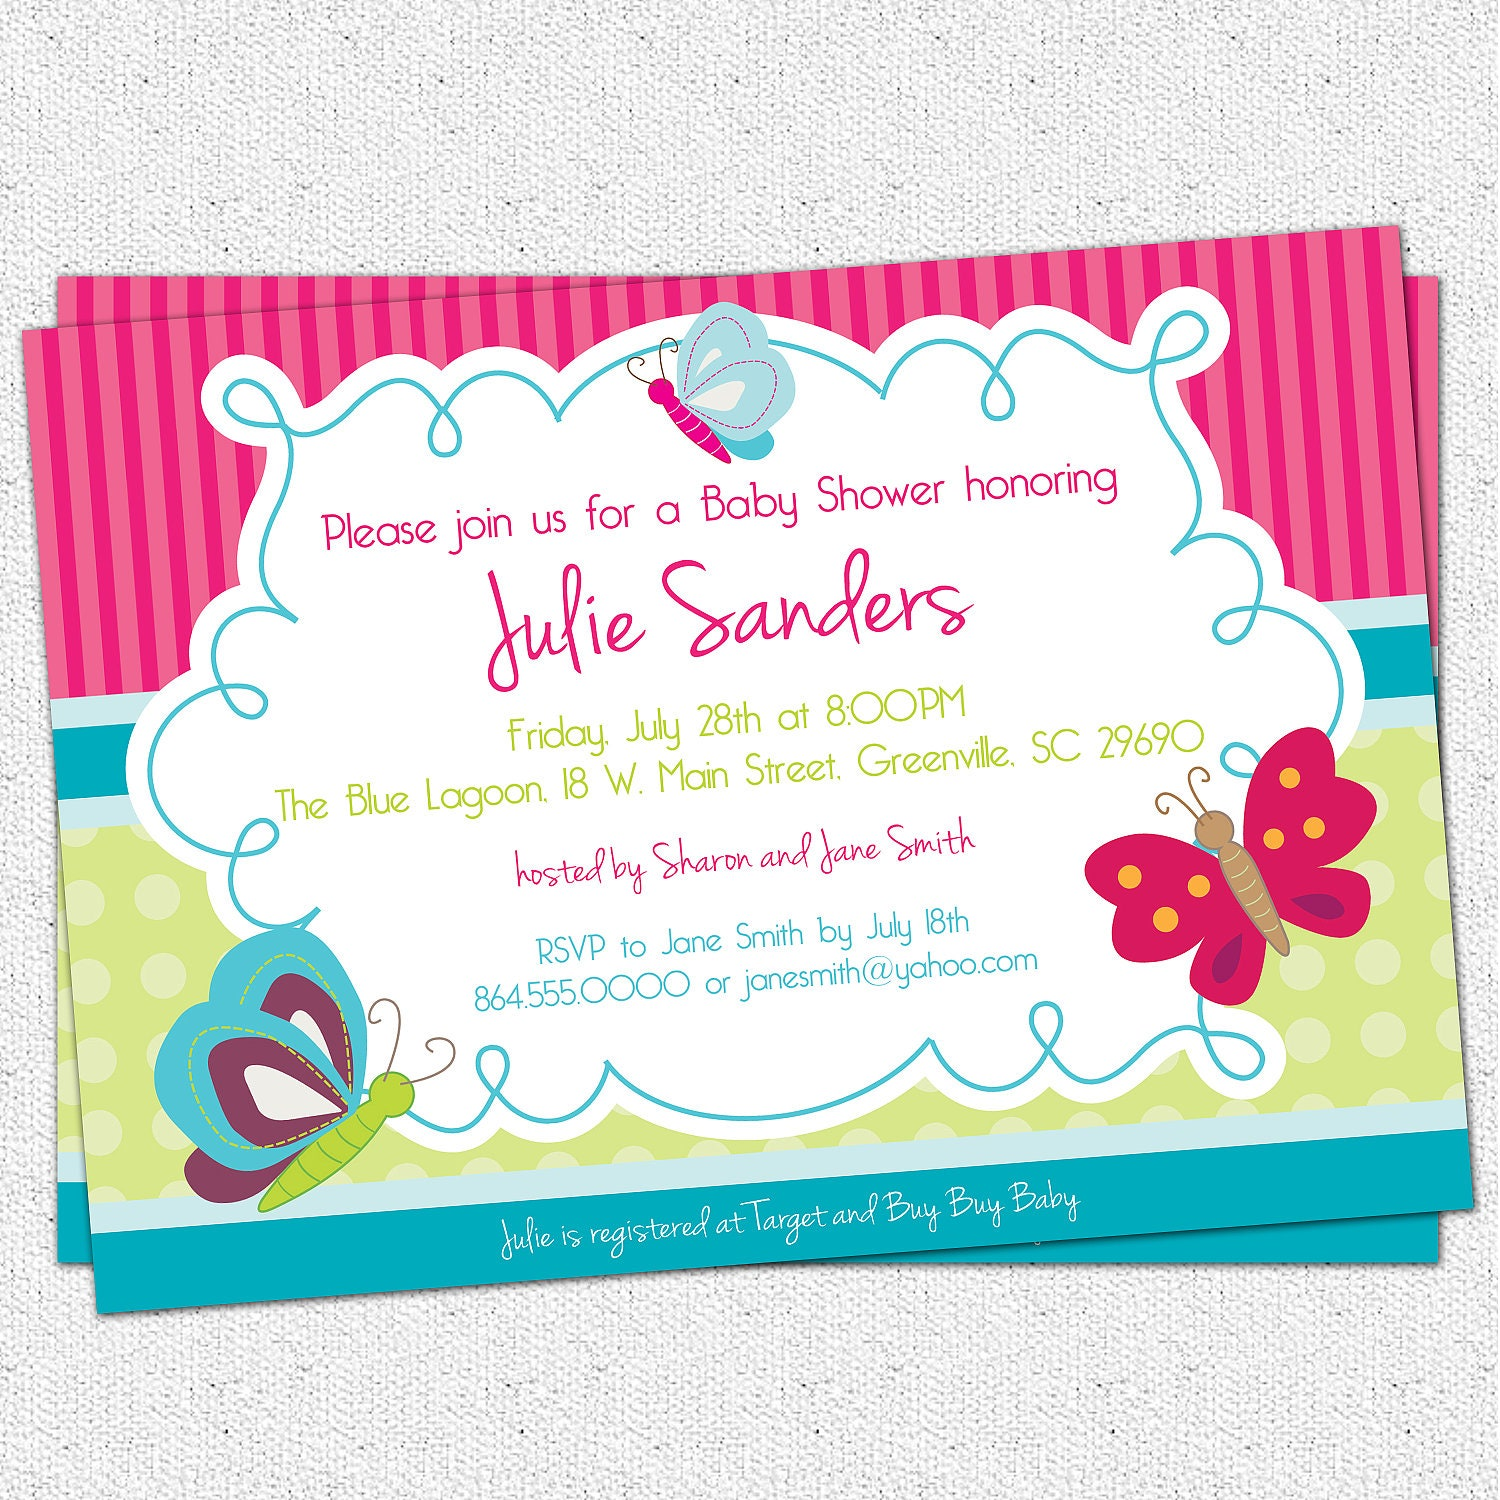 Printable Butterfly Baby Shower Invitation Butterflies – Free Customizable Printable Baby Shower Invitations